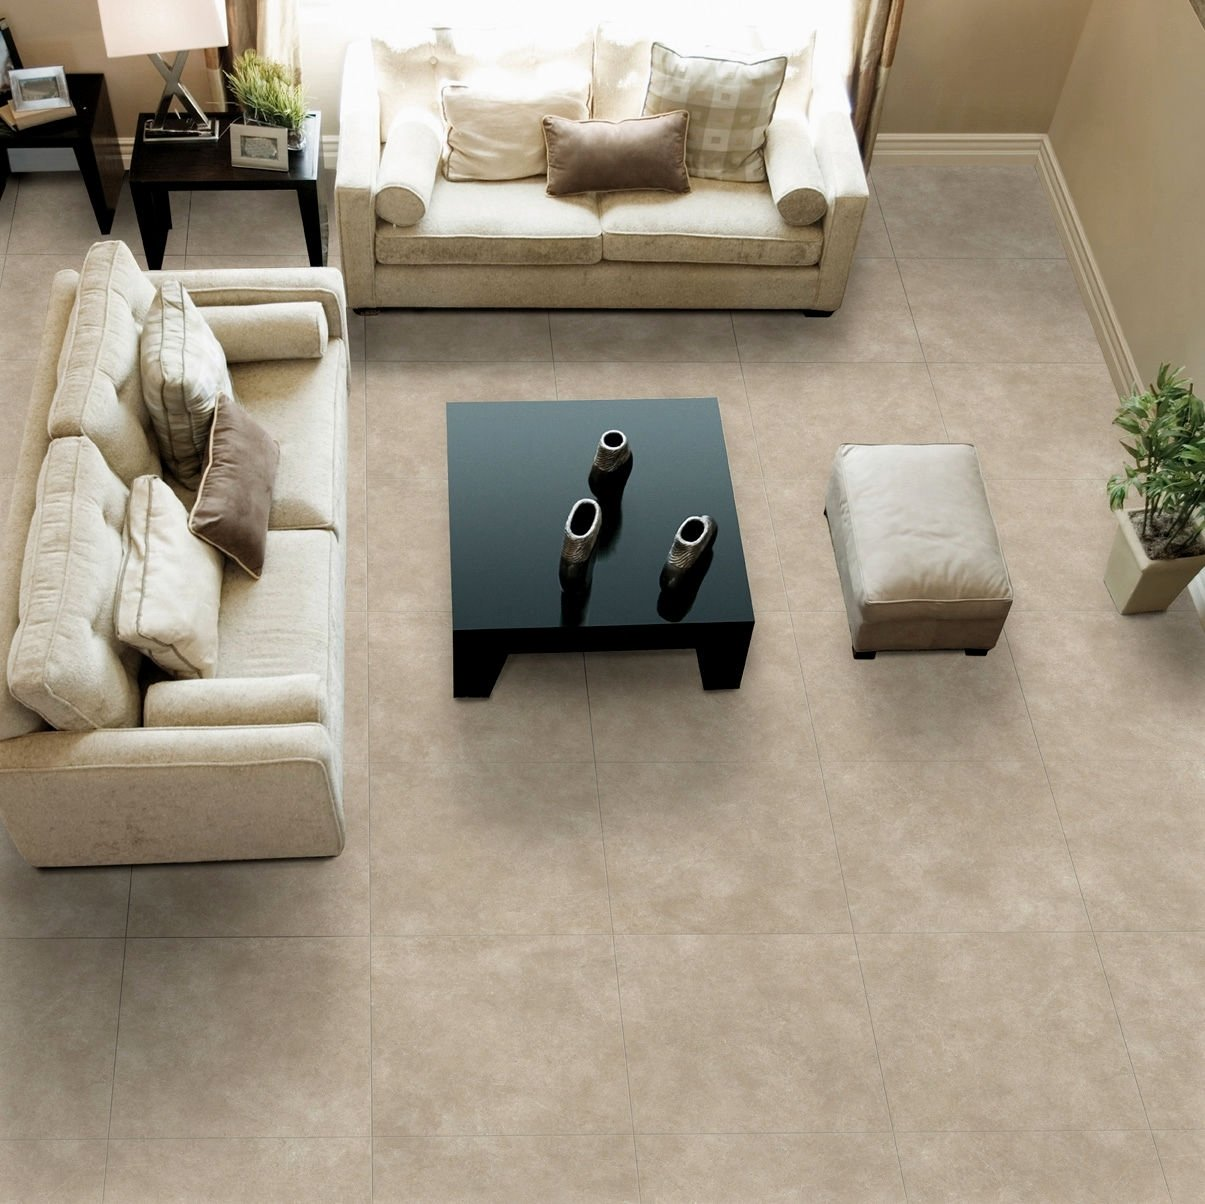 10 Famous Living Room Tile Floor Ideas tagged floor tiles design for living room in philippines living 2020